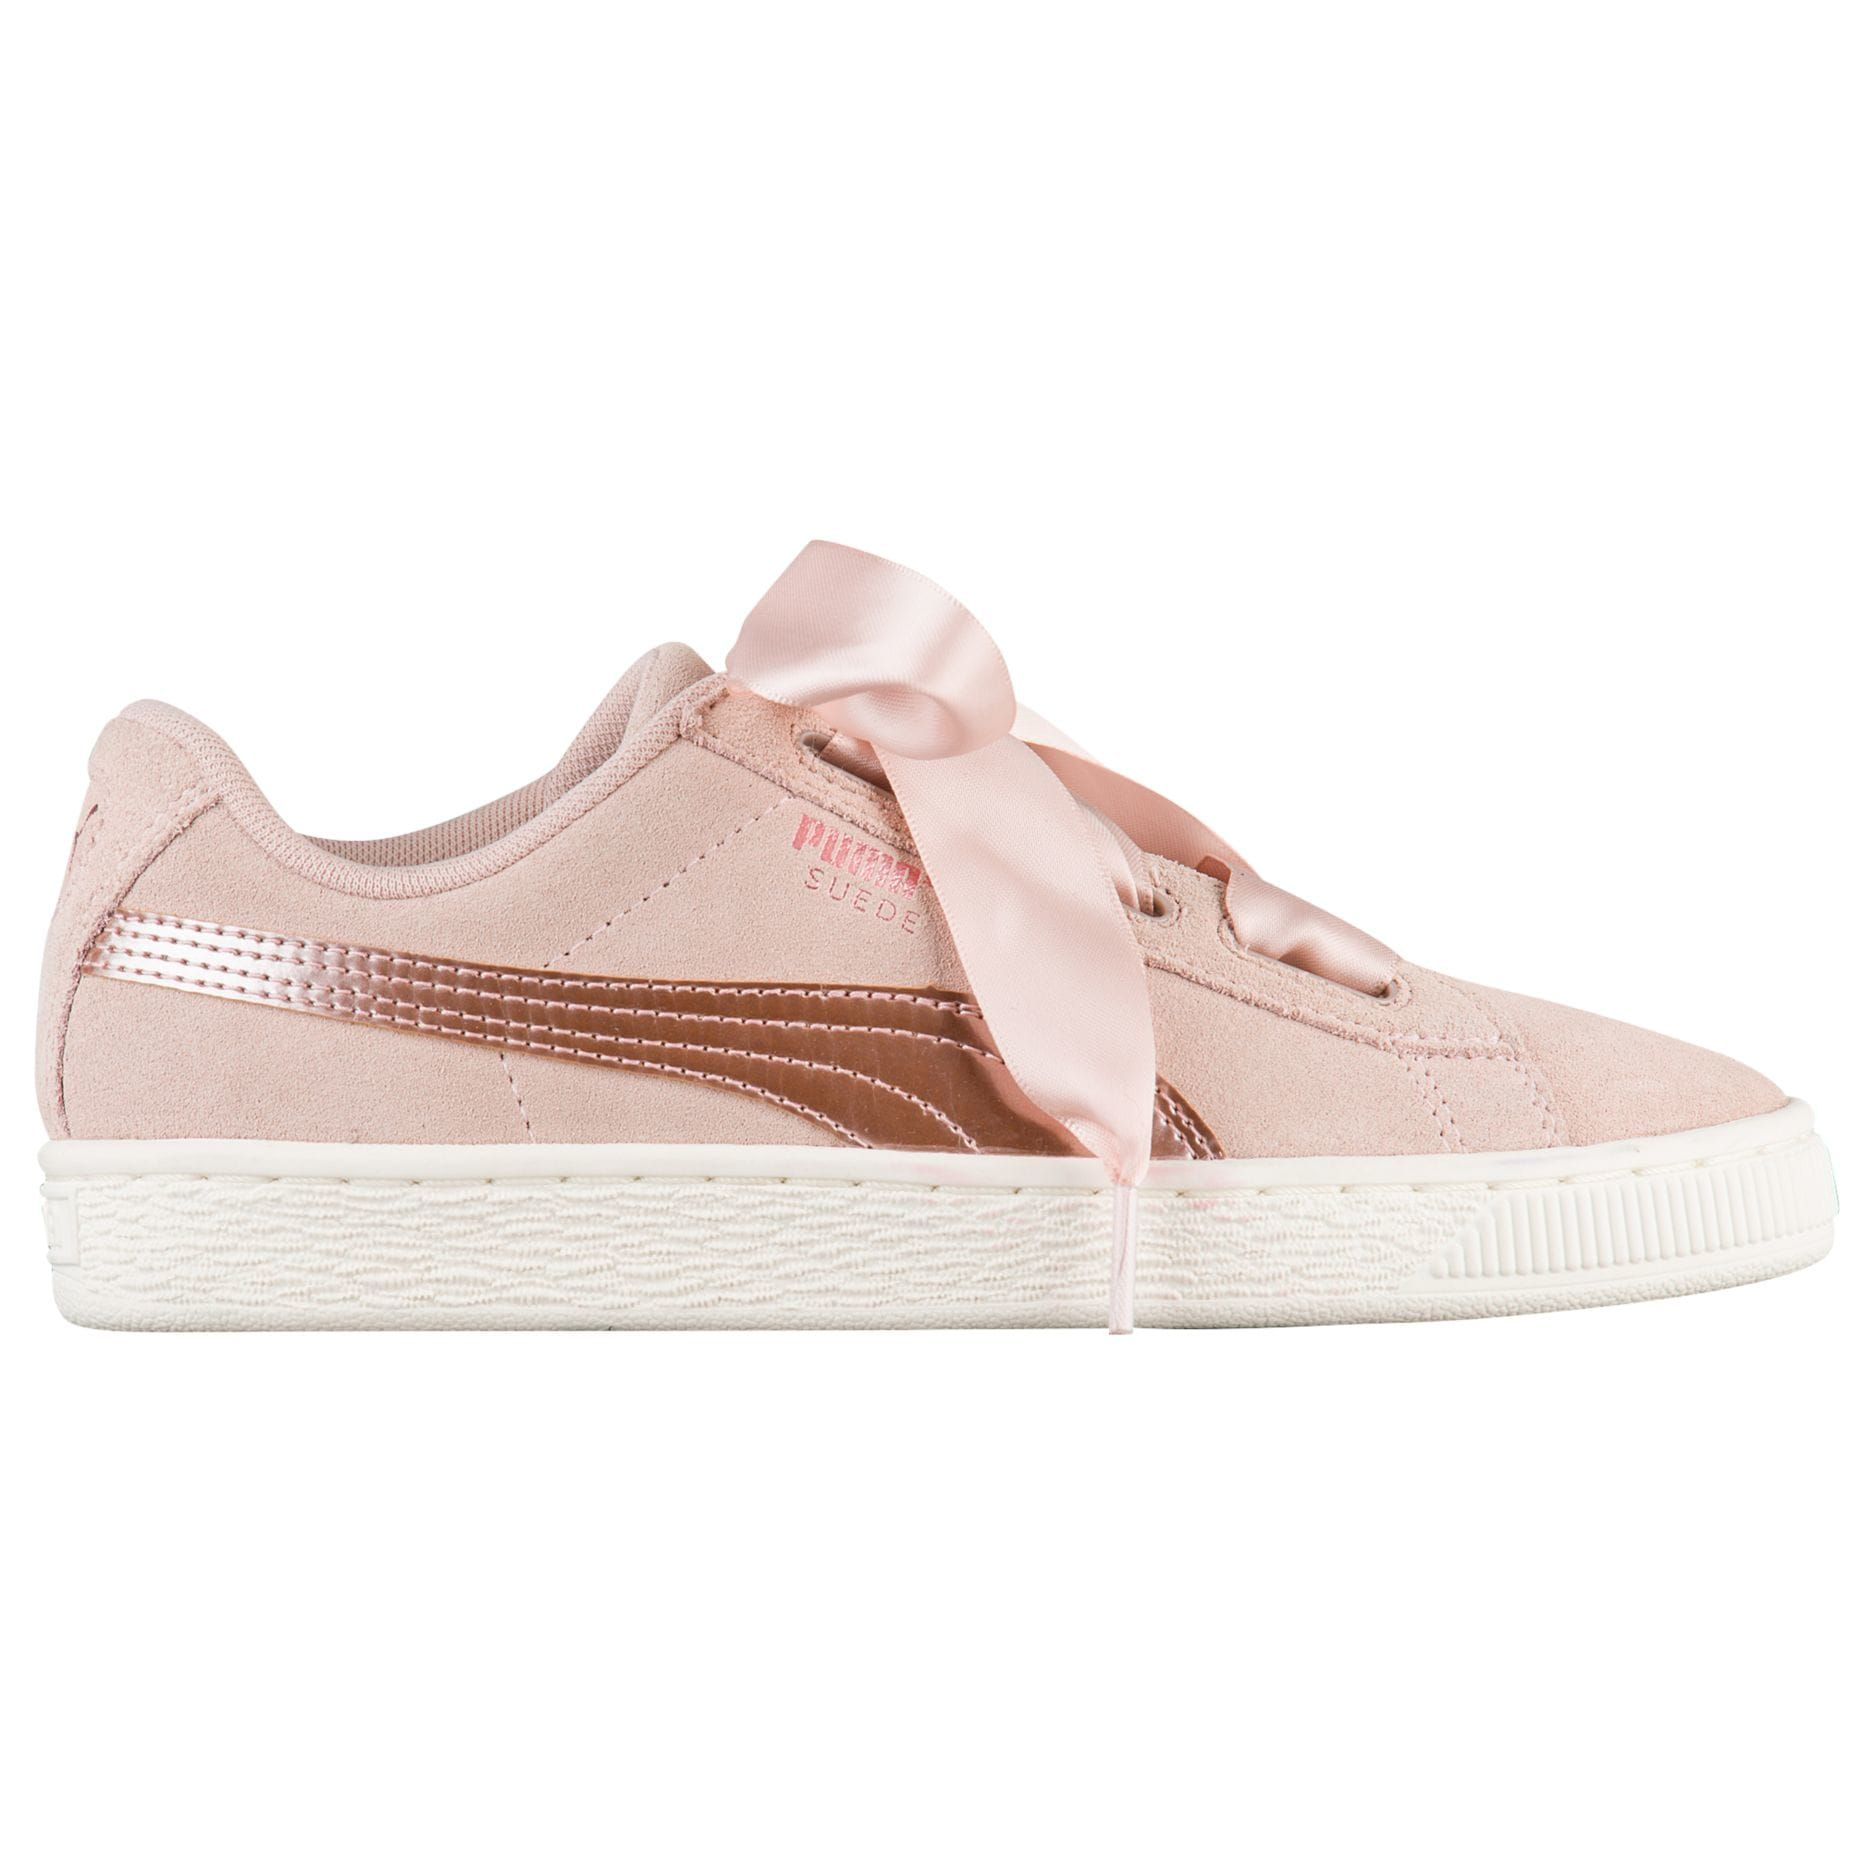 19fad37c06e PUMA Suede Heart - Girls  Grade School - Basketball - Shoes - Rose  Gold Cameo Rose